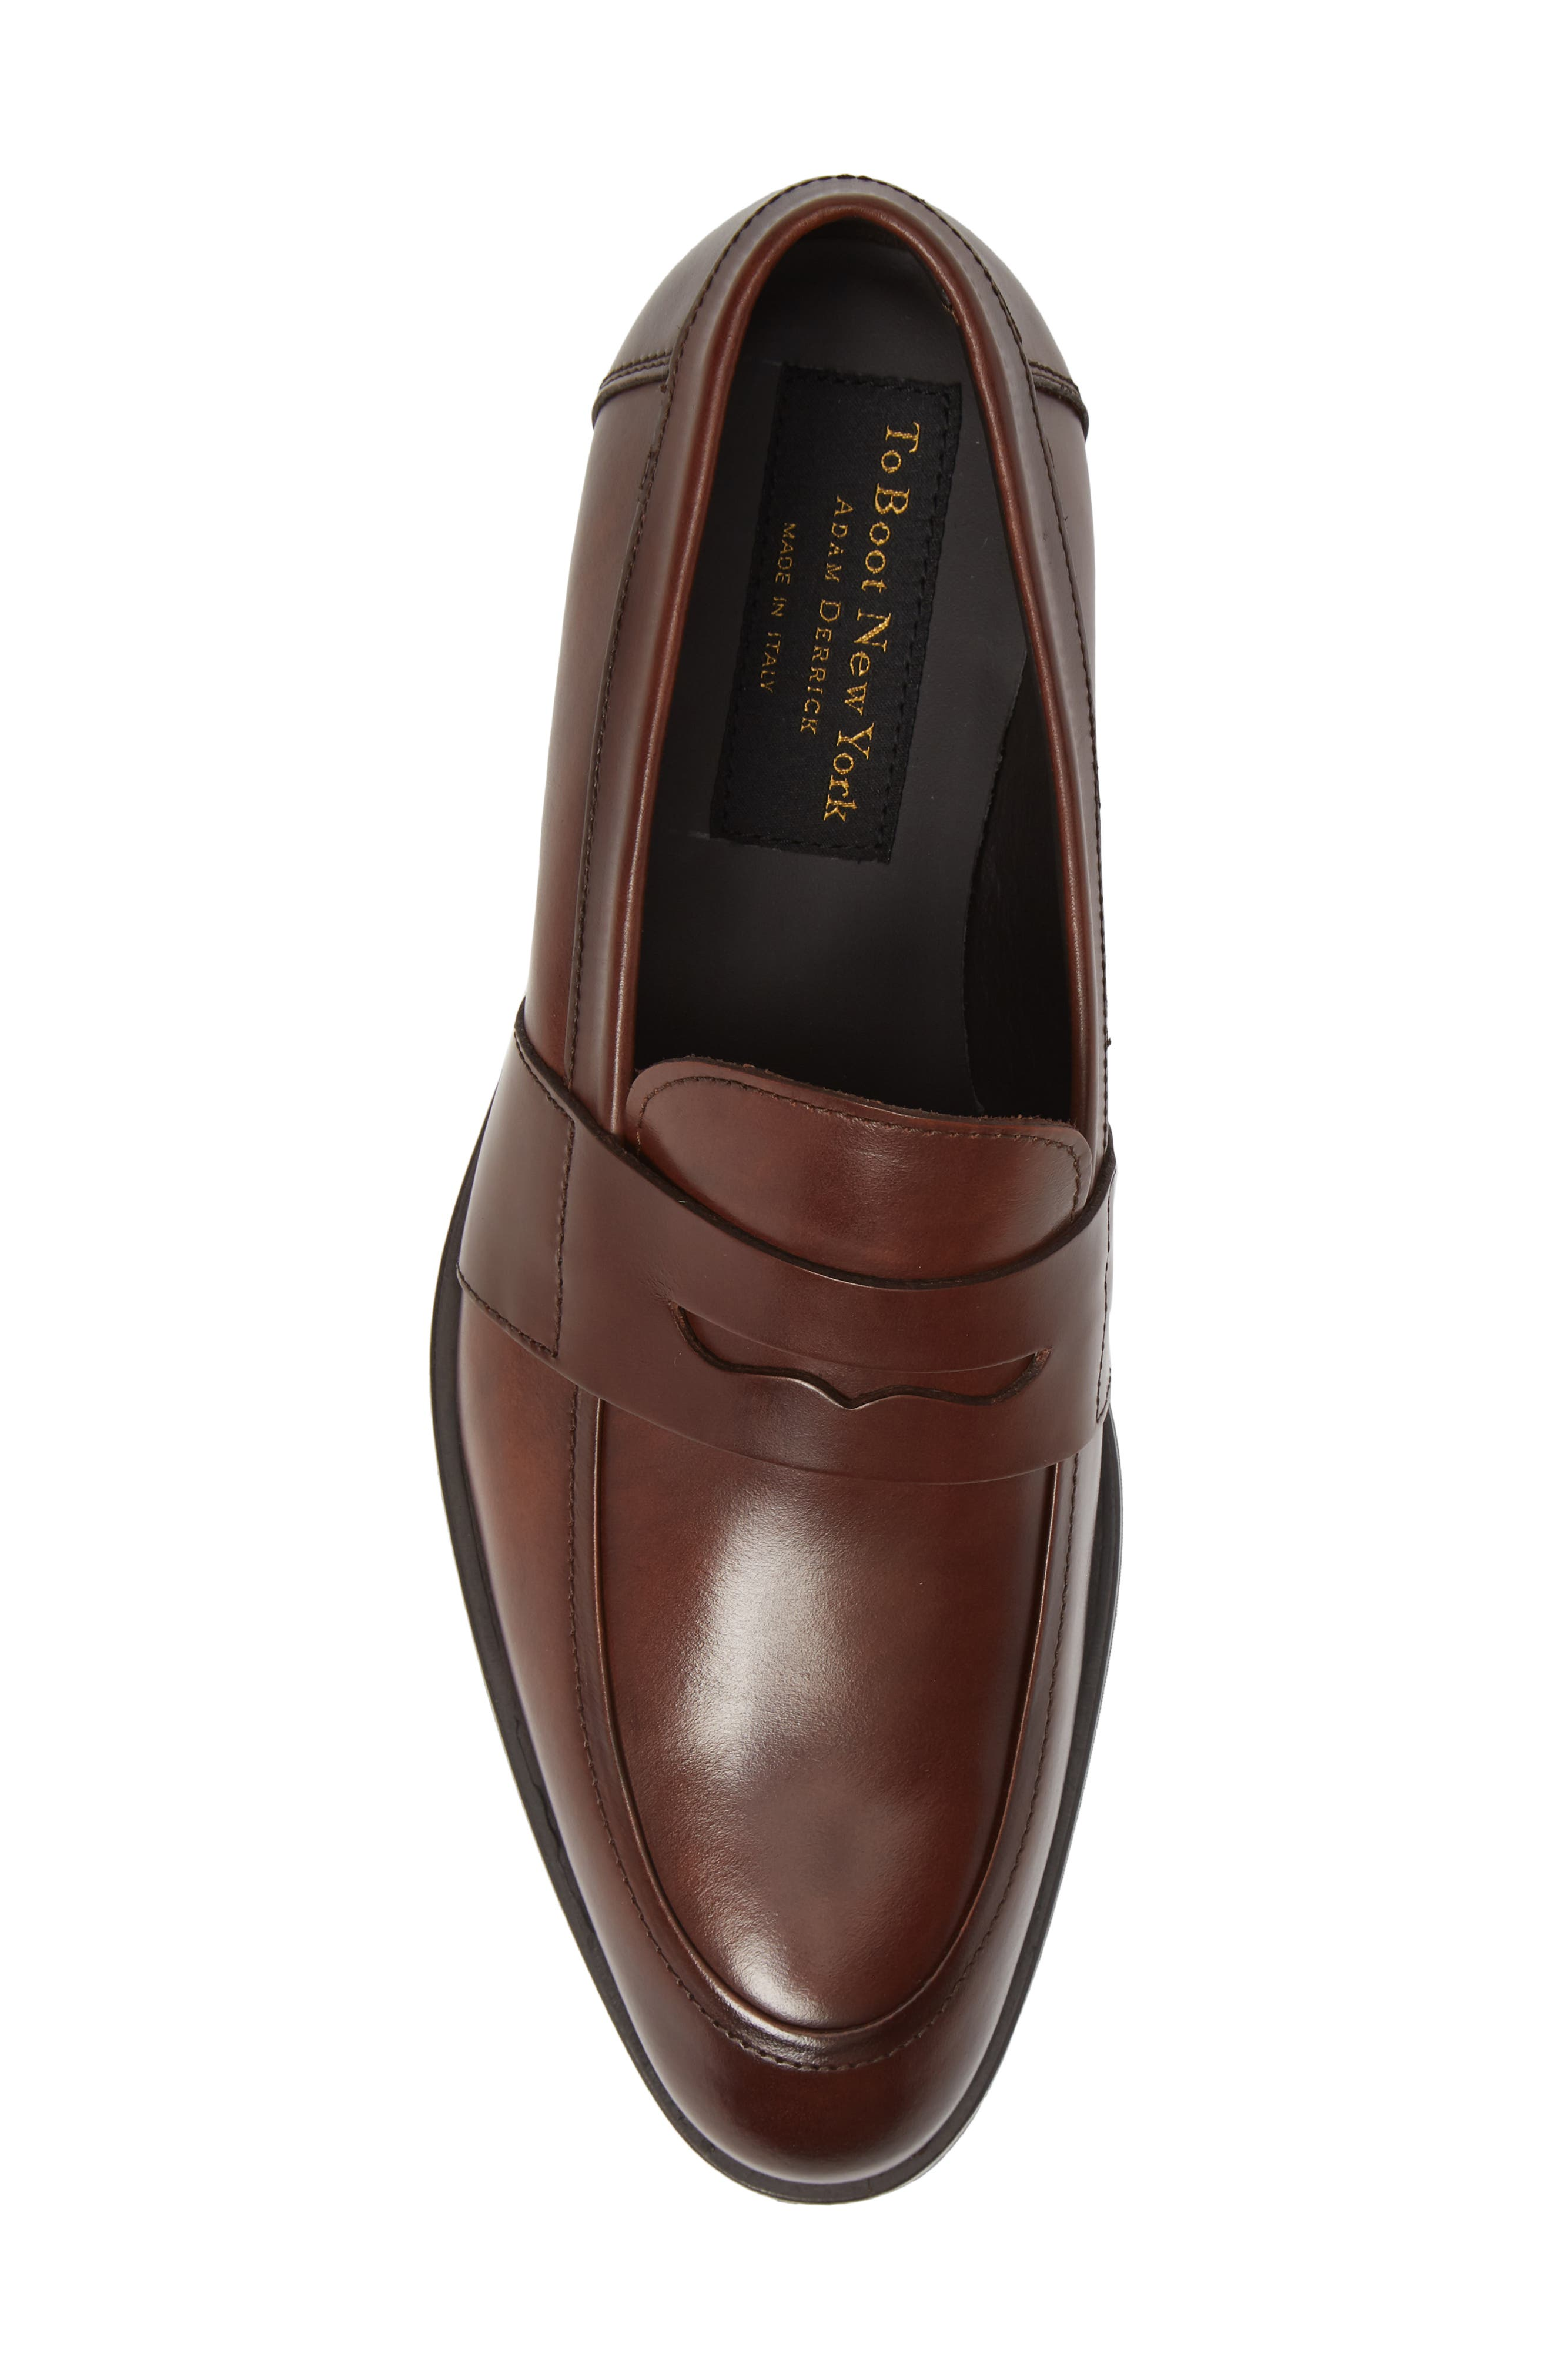 Devries Penny Loafer,                             Alternate thumbnail 5, color,                             VITELLO BRUCIATO LEATHER